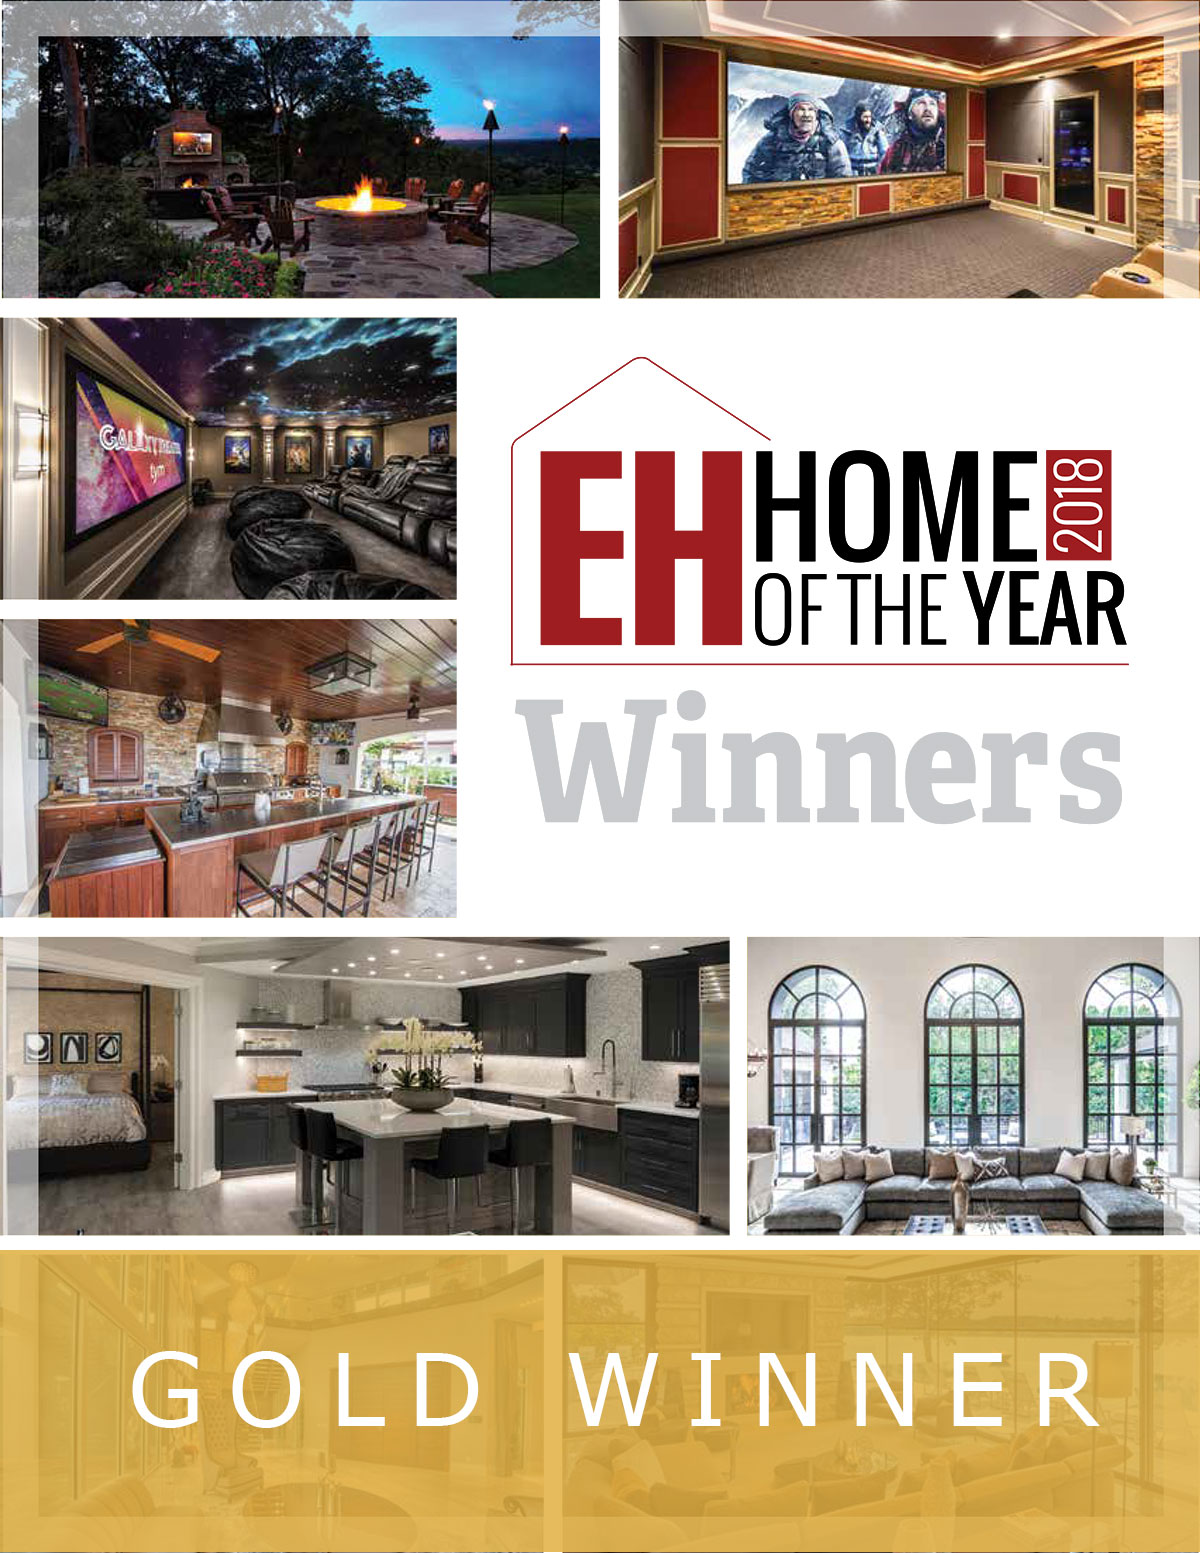 Gold Winner: Lelch AV is EHome of the Year Winner